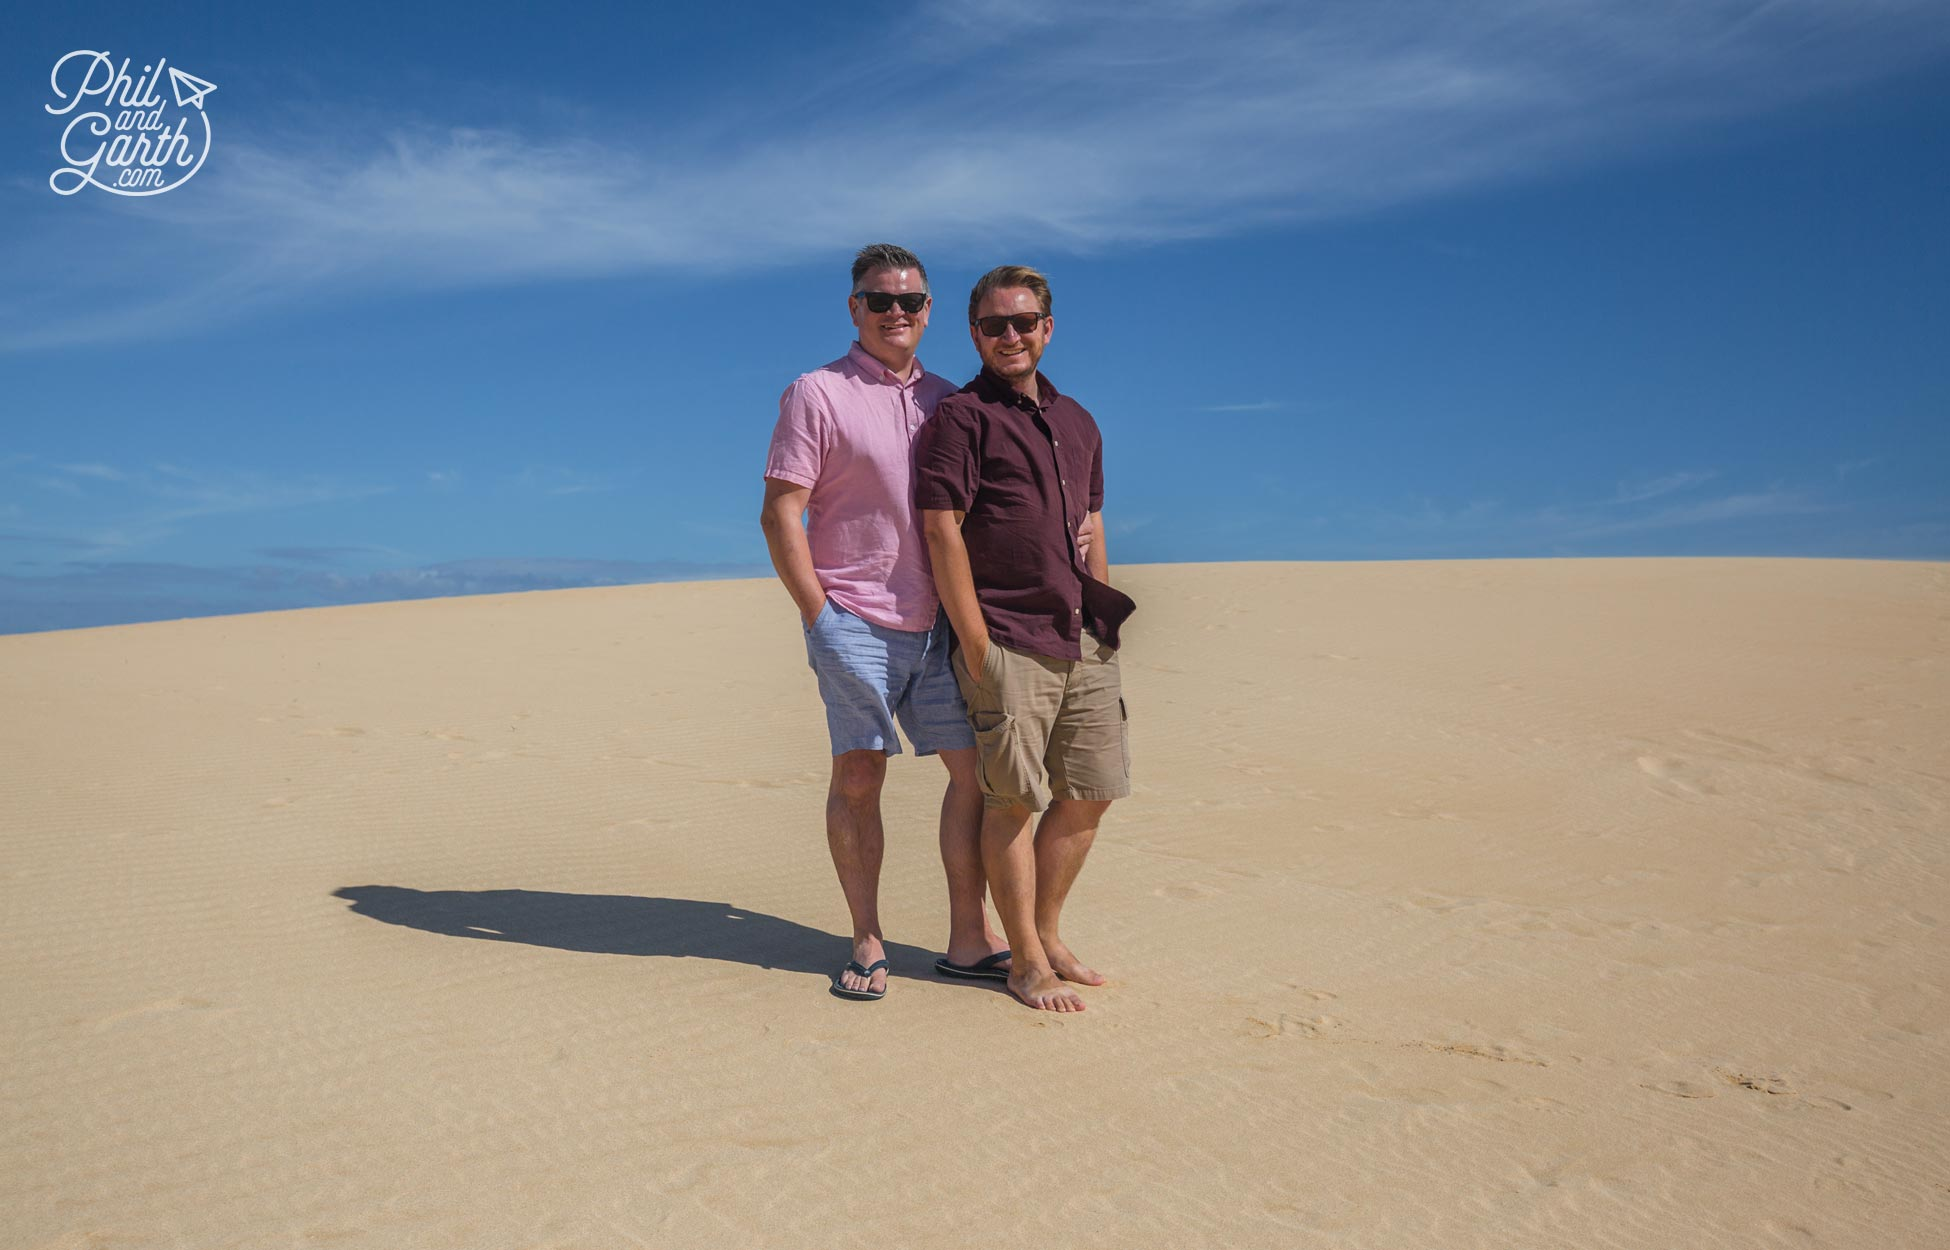 Phil and Garth's Top 5 Fuerteventura Tips